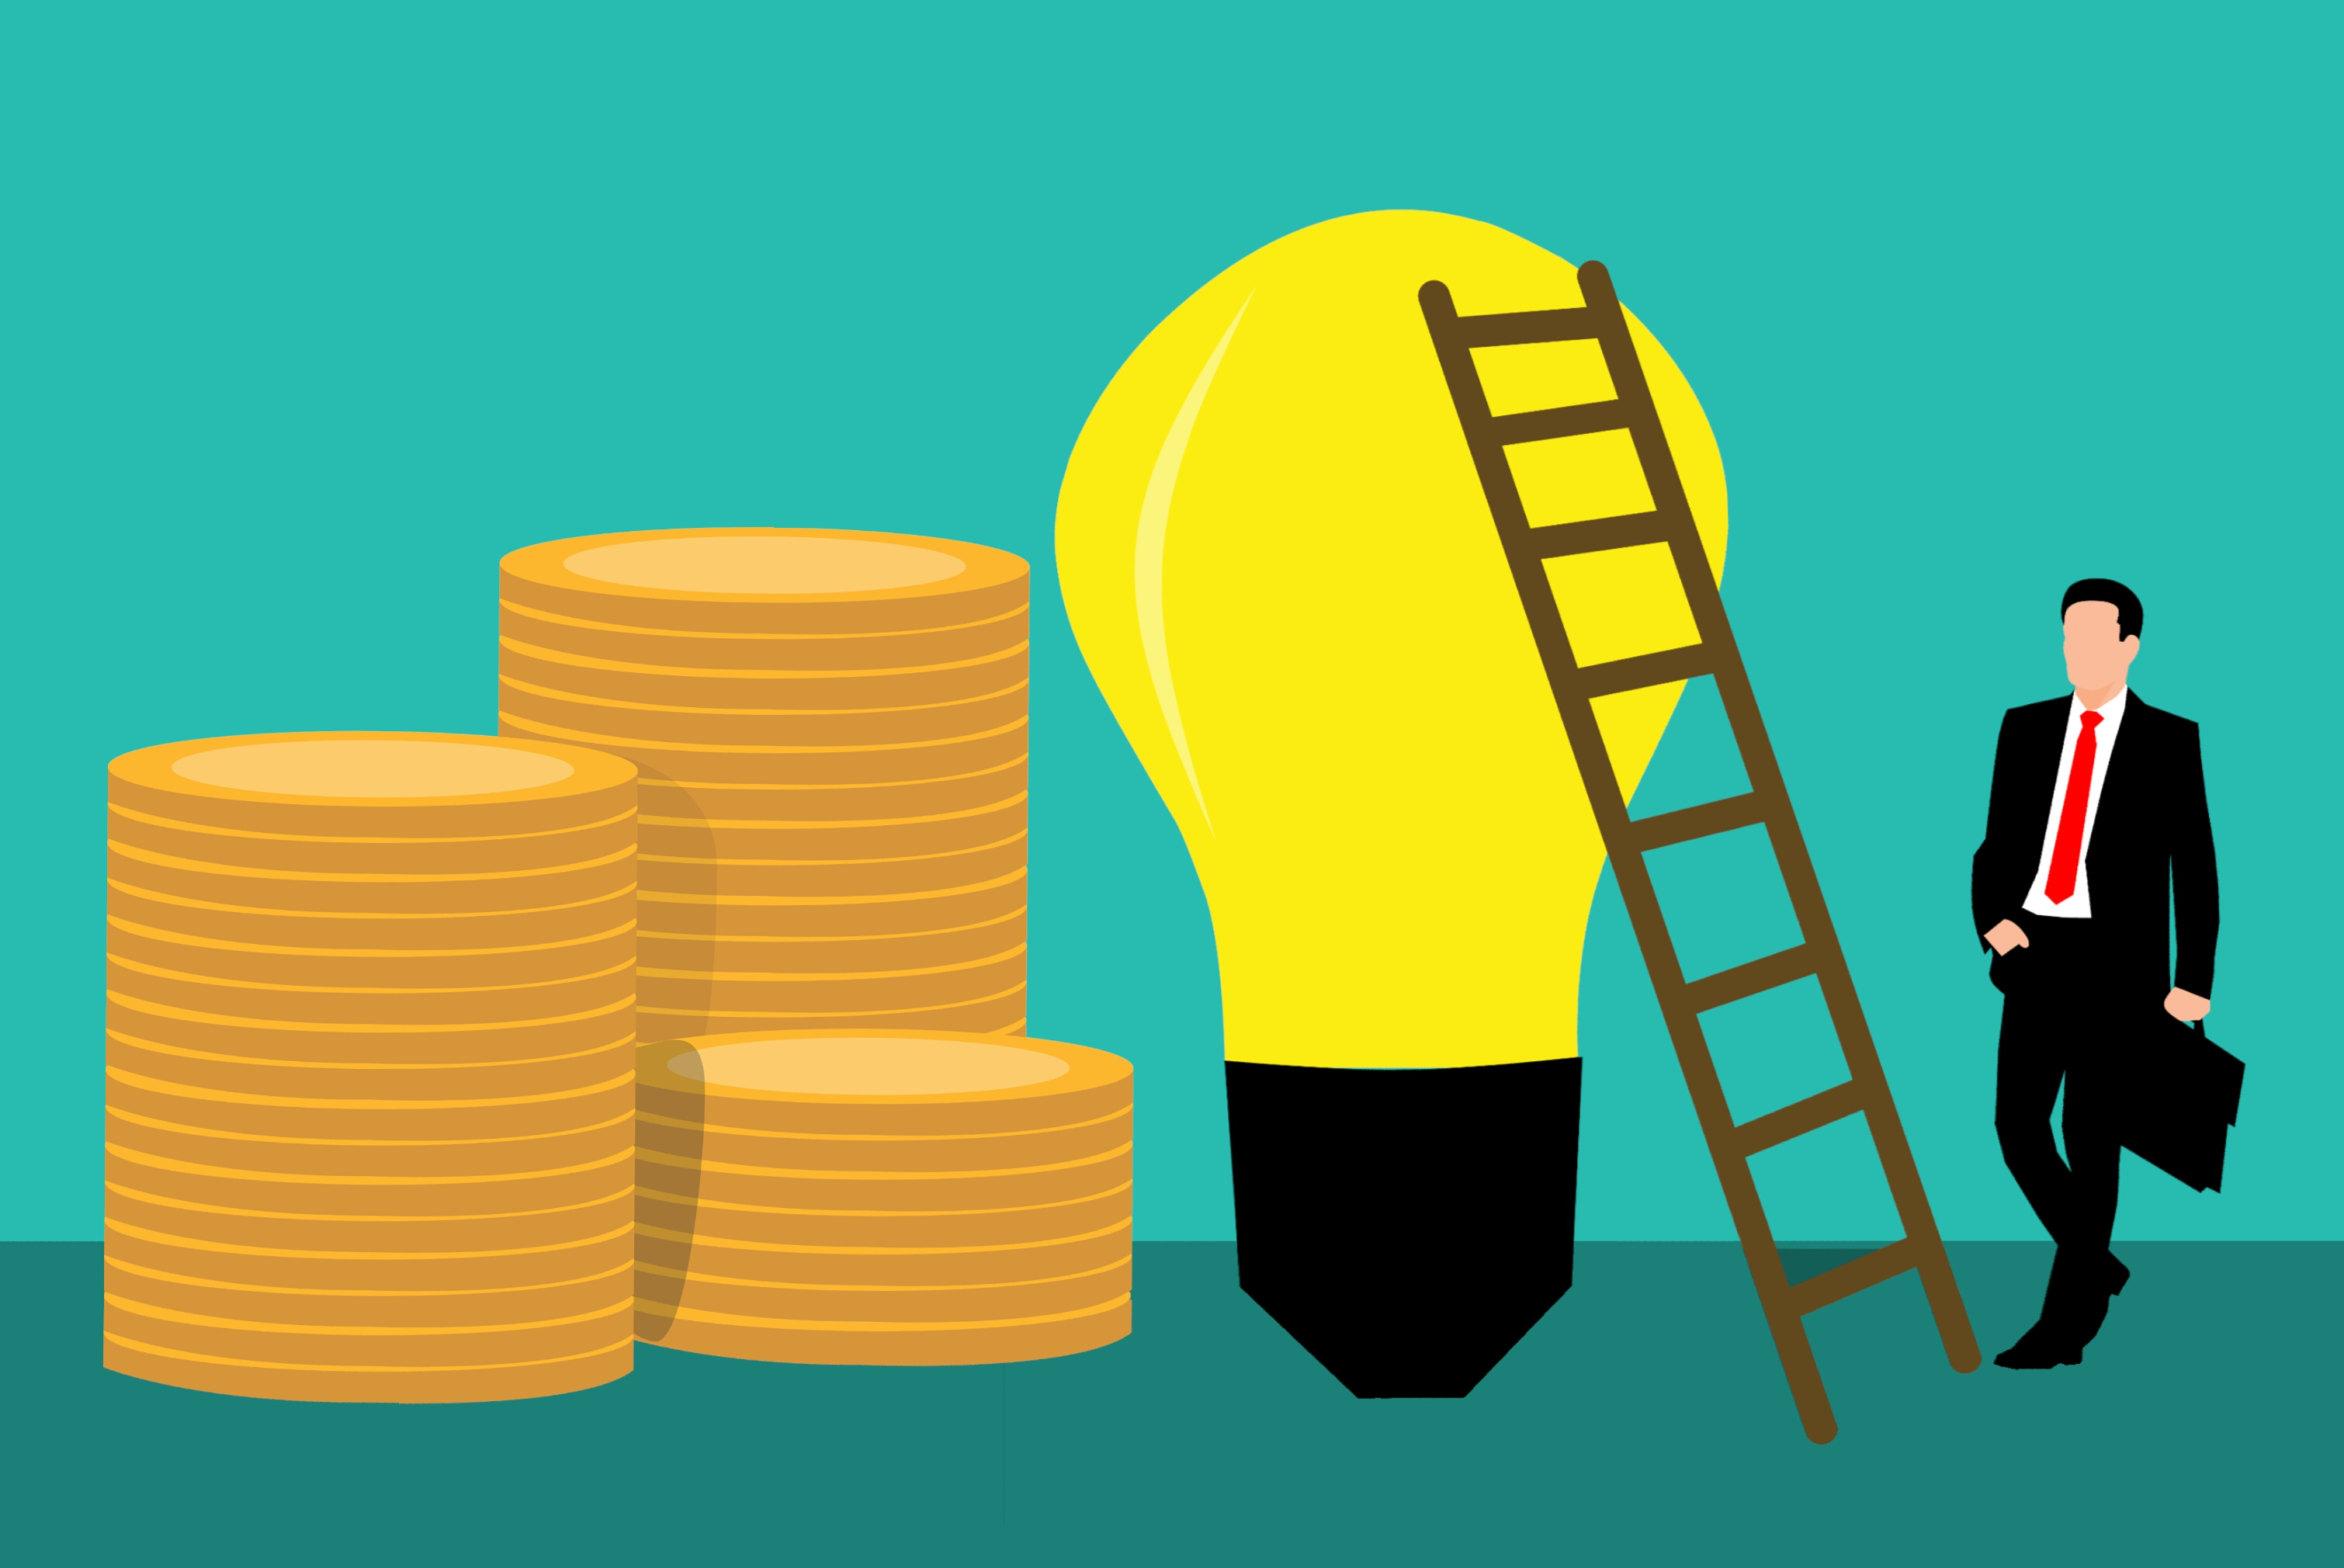 A graphic in clip art syle. Background is a light blue and the floor is teal, both solid colours. On the left are 3 different sized piles of large gold coins. In the centre is a yellow light bulb which takes up 4 fifths of the length of the image, it has a brown ladder leaning against it. To the right of this is a man in a black suit and red tie, carrying a black brief case. His head reaches half way up the ladder.